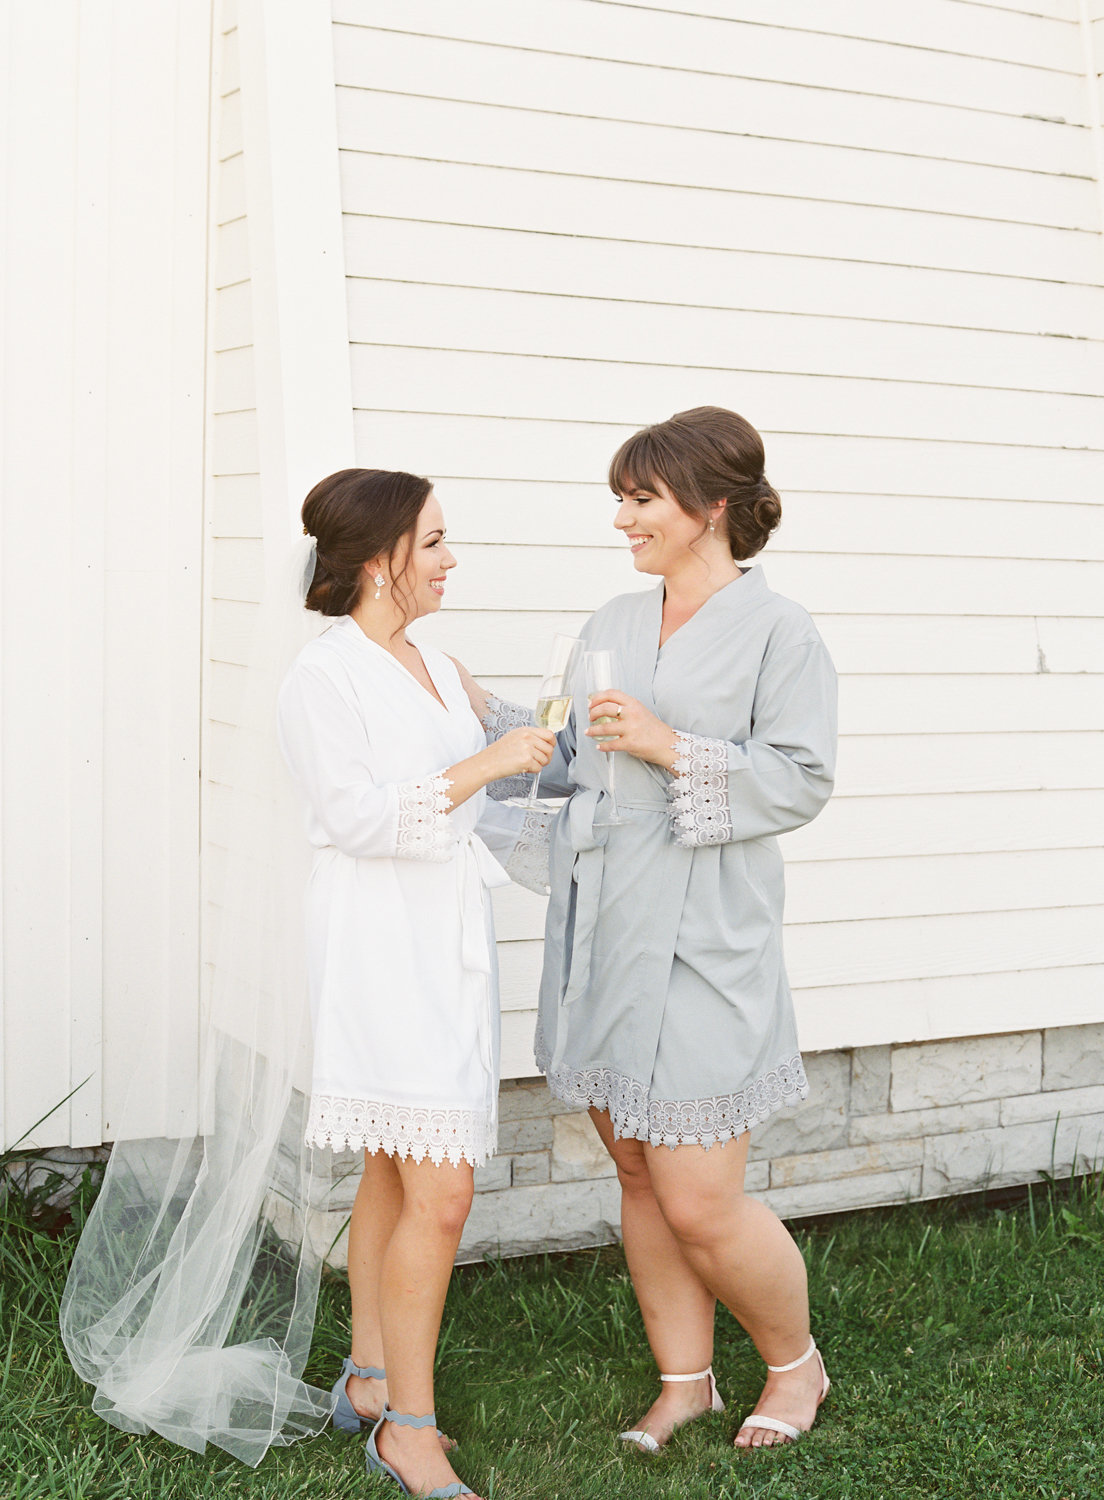 Jacqueline Anne Photography - Nova Scotia Backyard Wedding-38